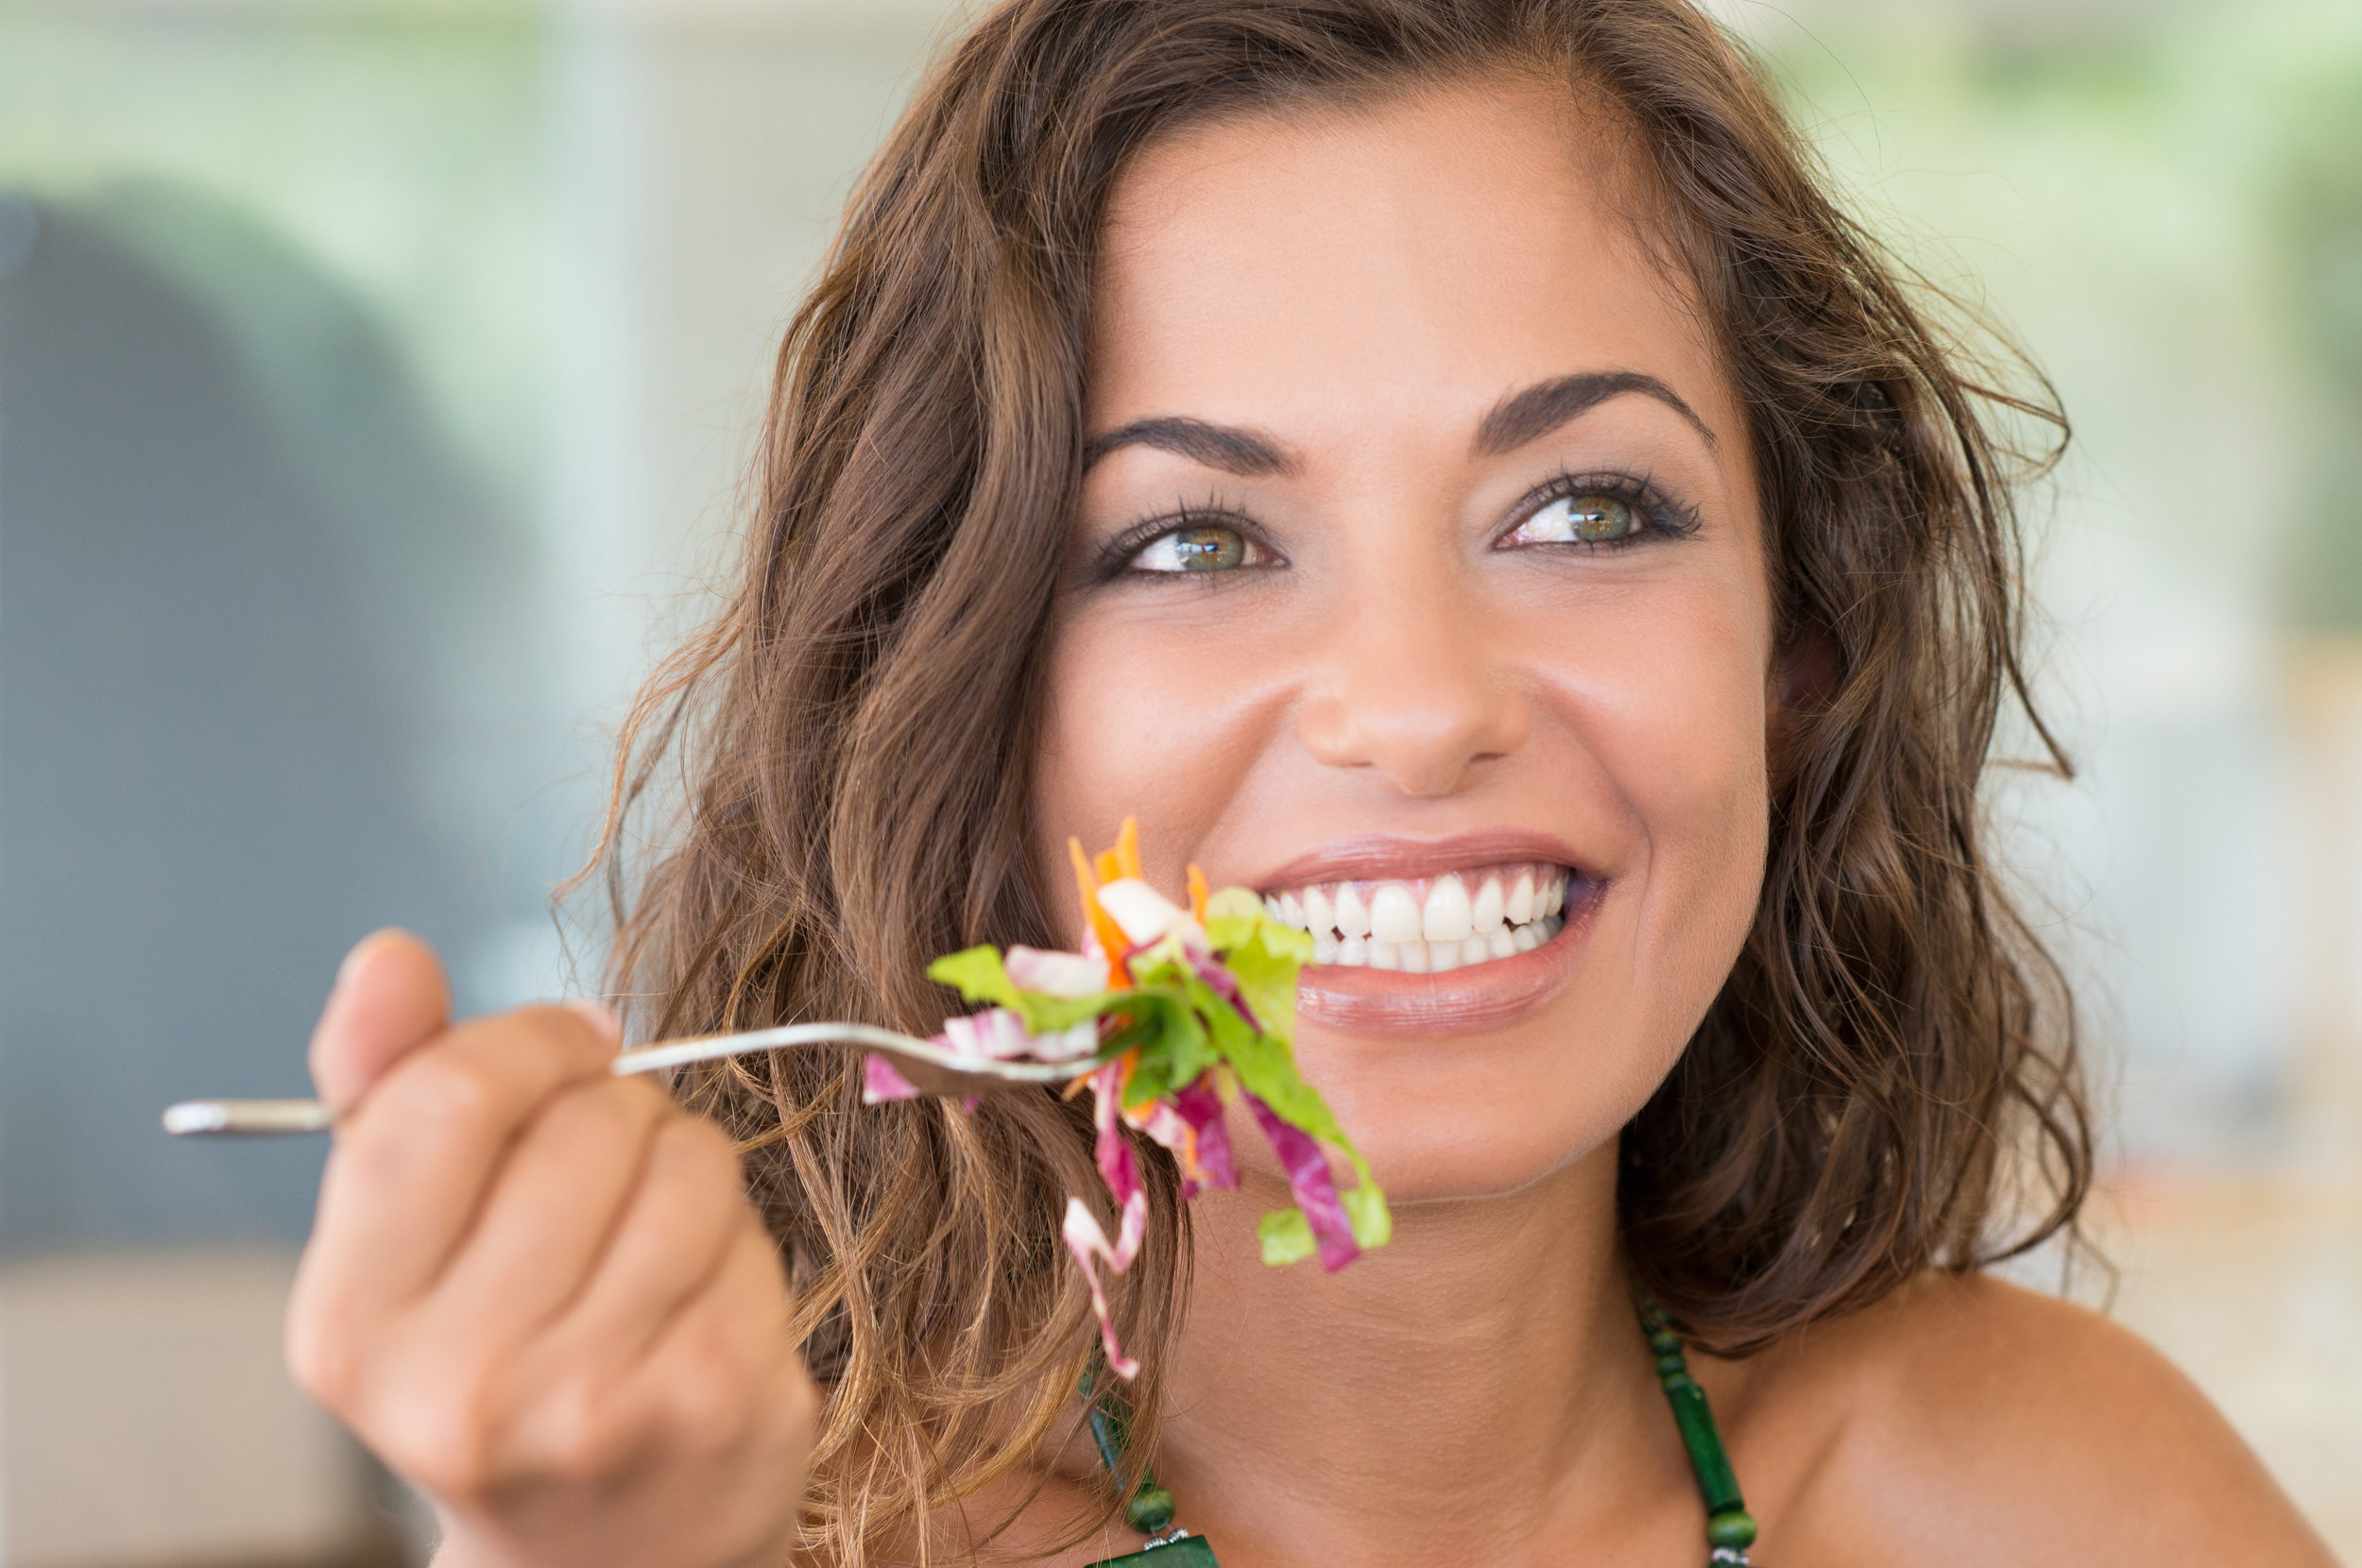 No Diets! How to Eat According to Intuition